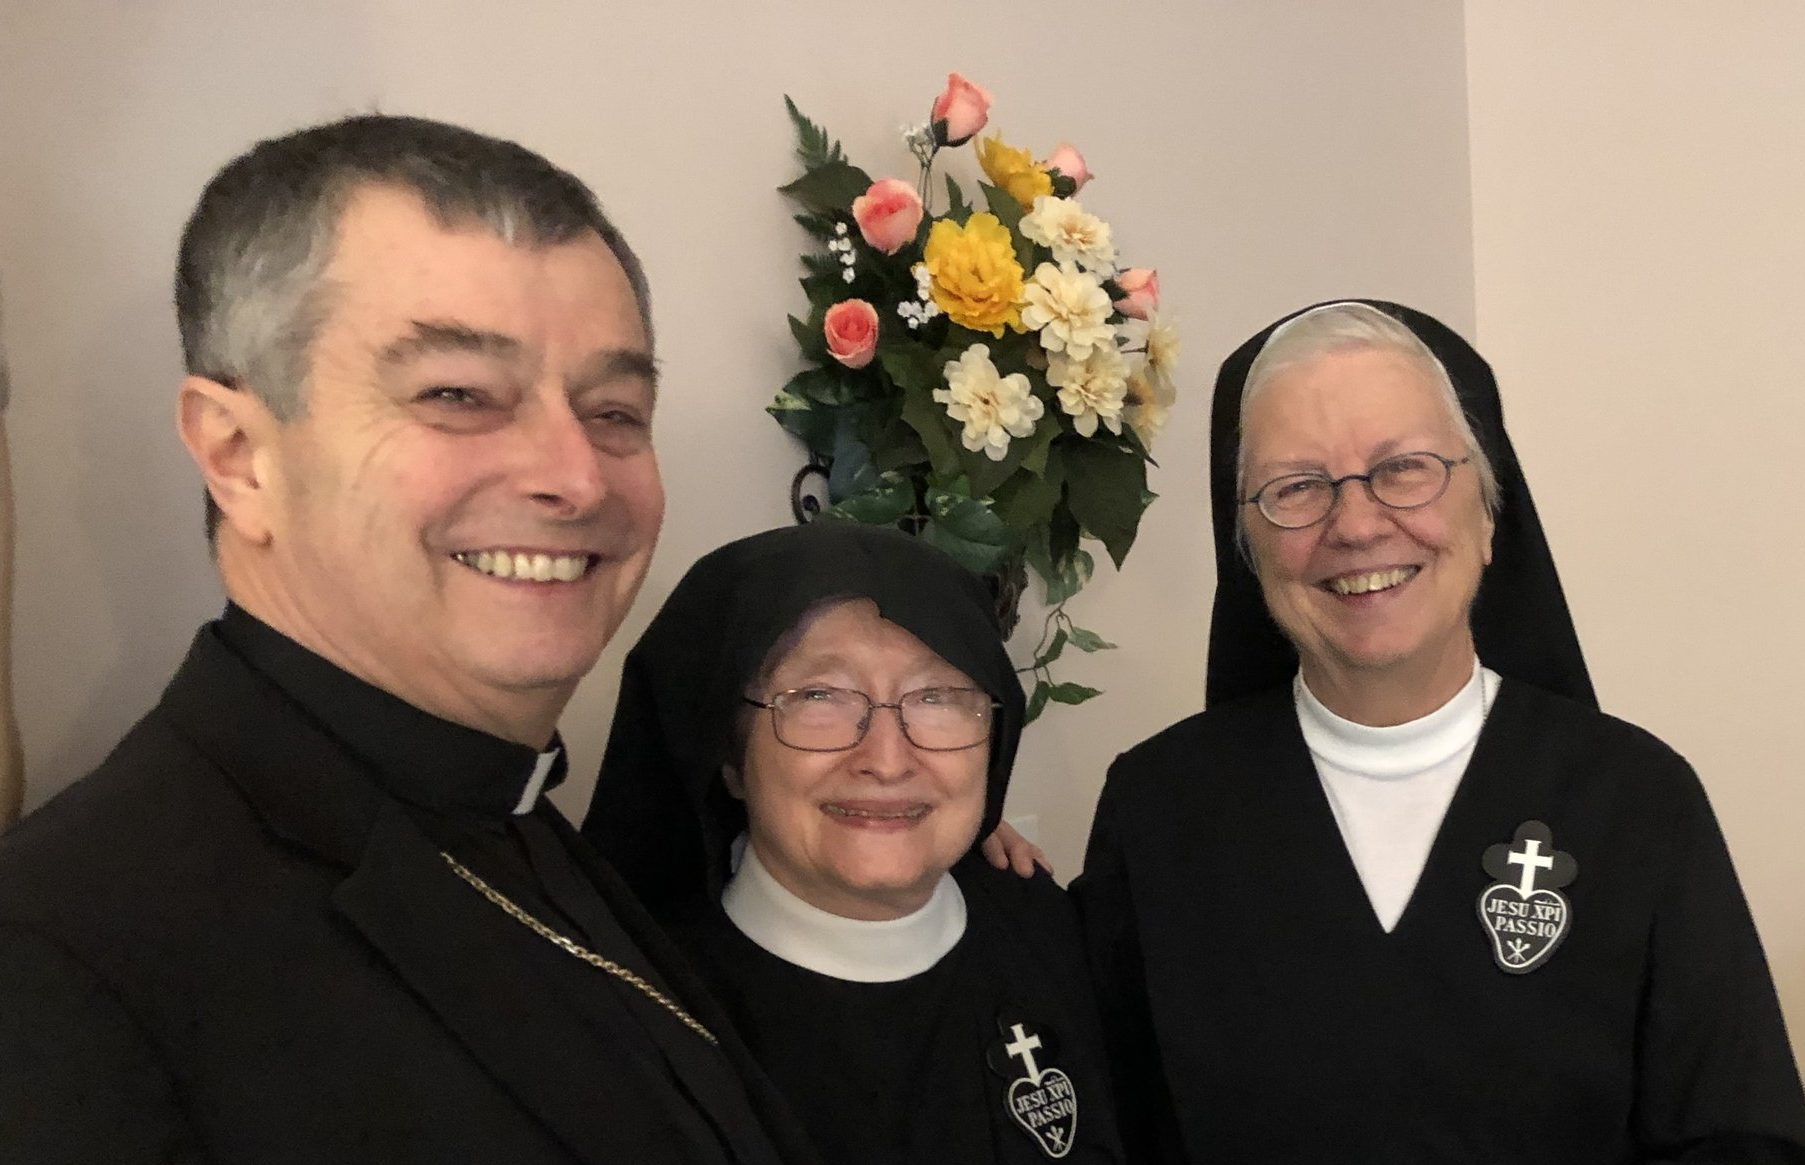 Bishop William Medley (Diocese of Owensboro) with Sr. Catherine Marie, CP and Sr. Joan Mary, CP - Bishop Medley sent them off to Lucca with his blessing